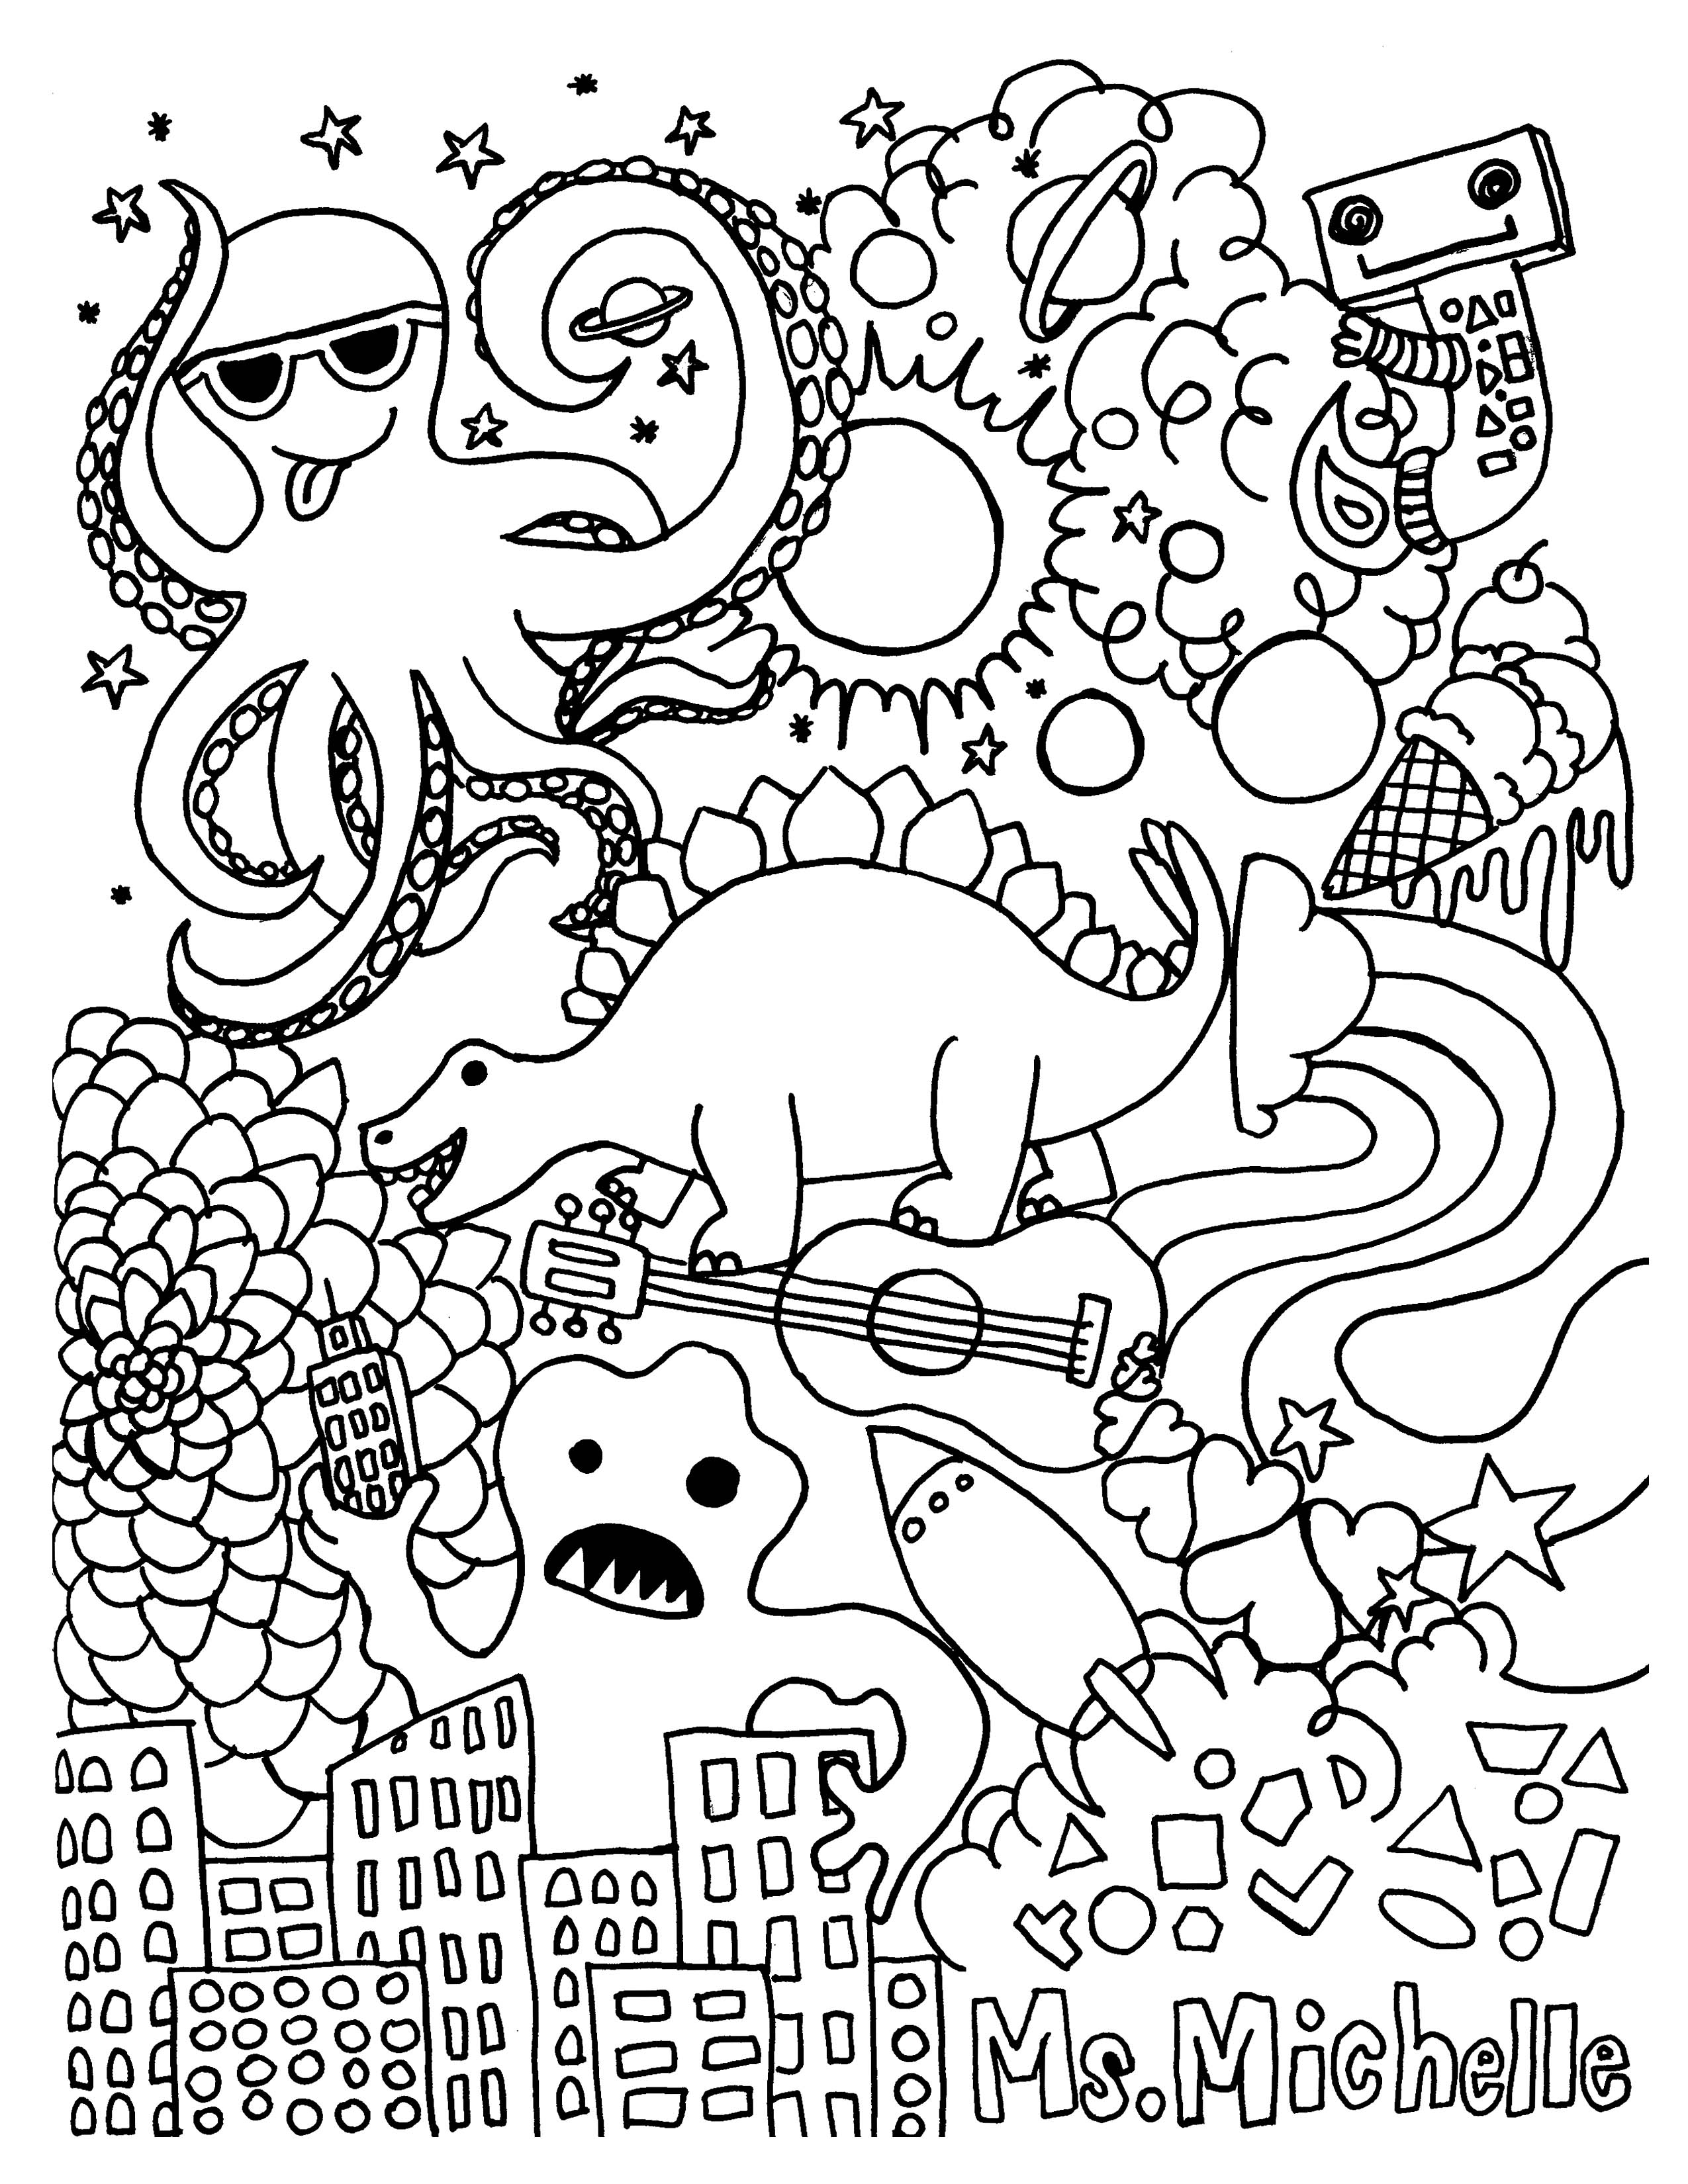 Word Search Coloring Pages To Print Coloring Pages Coloring Pages Fresh Thanksgiving Page Of For